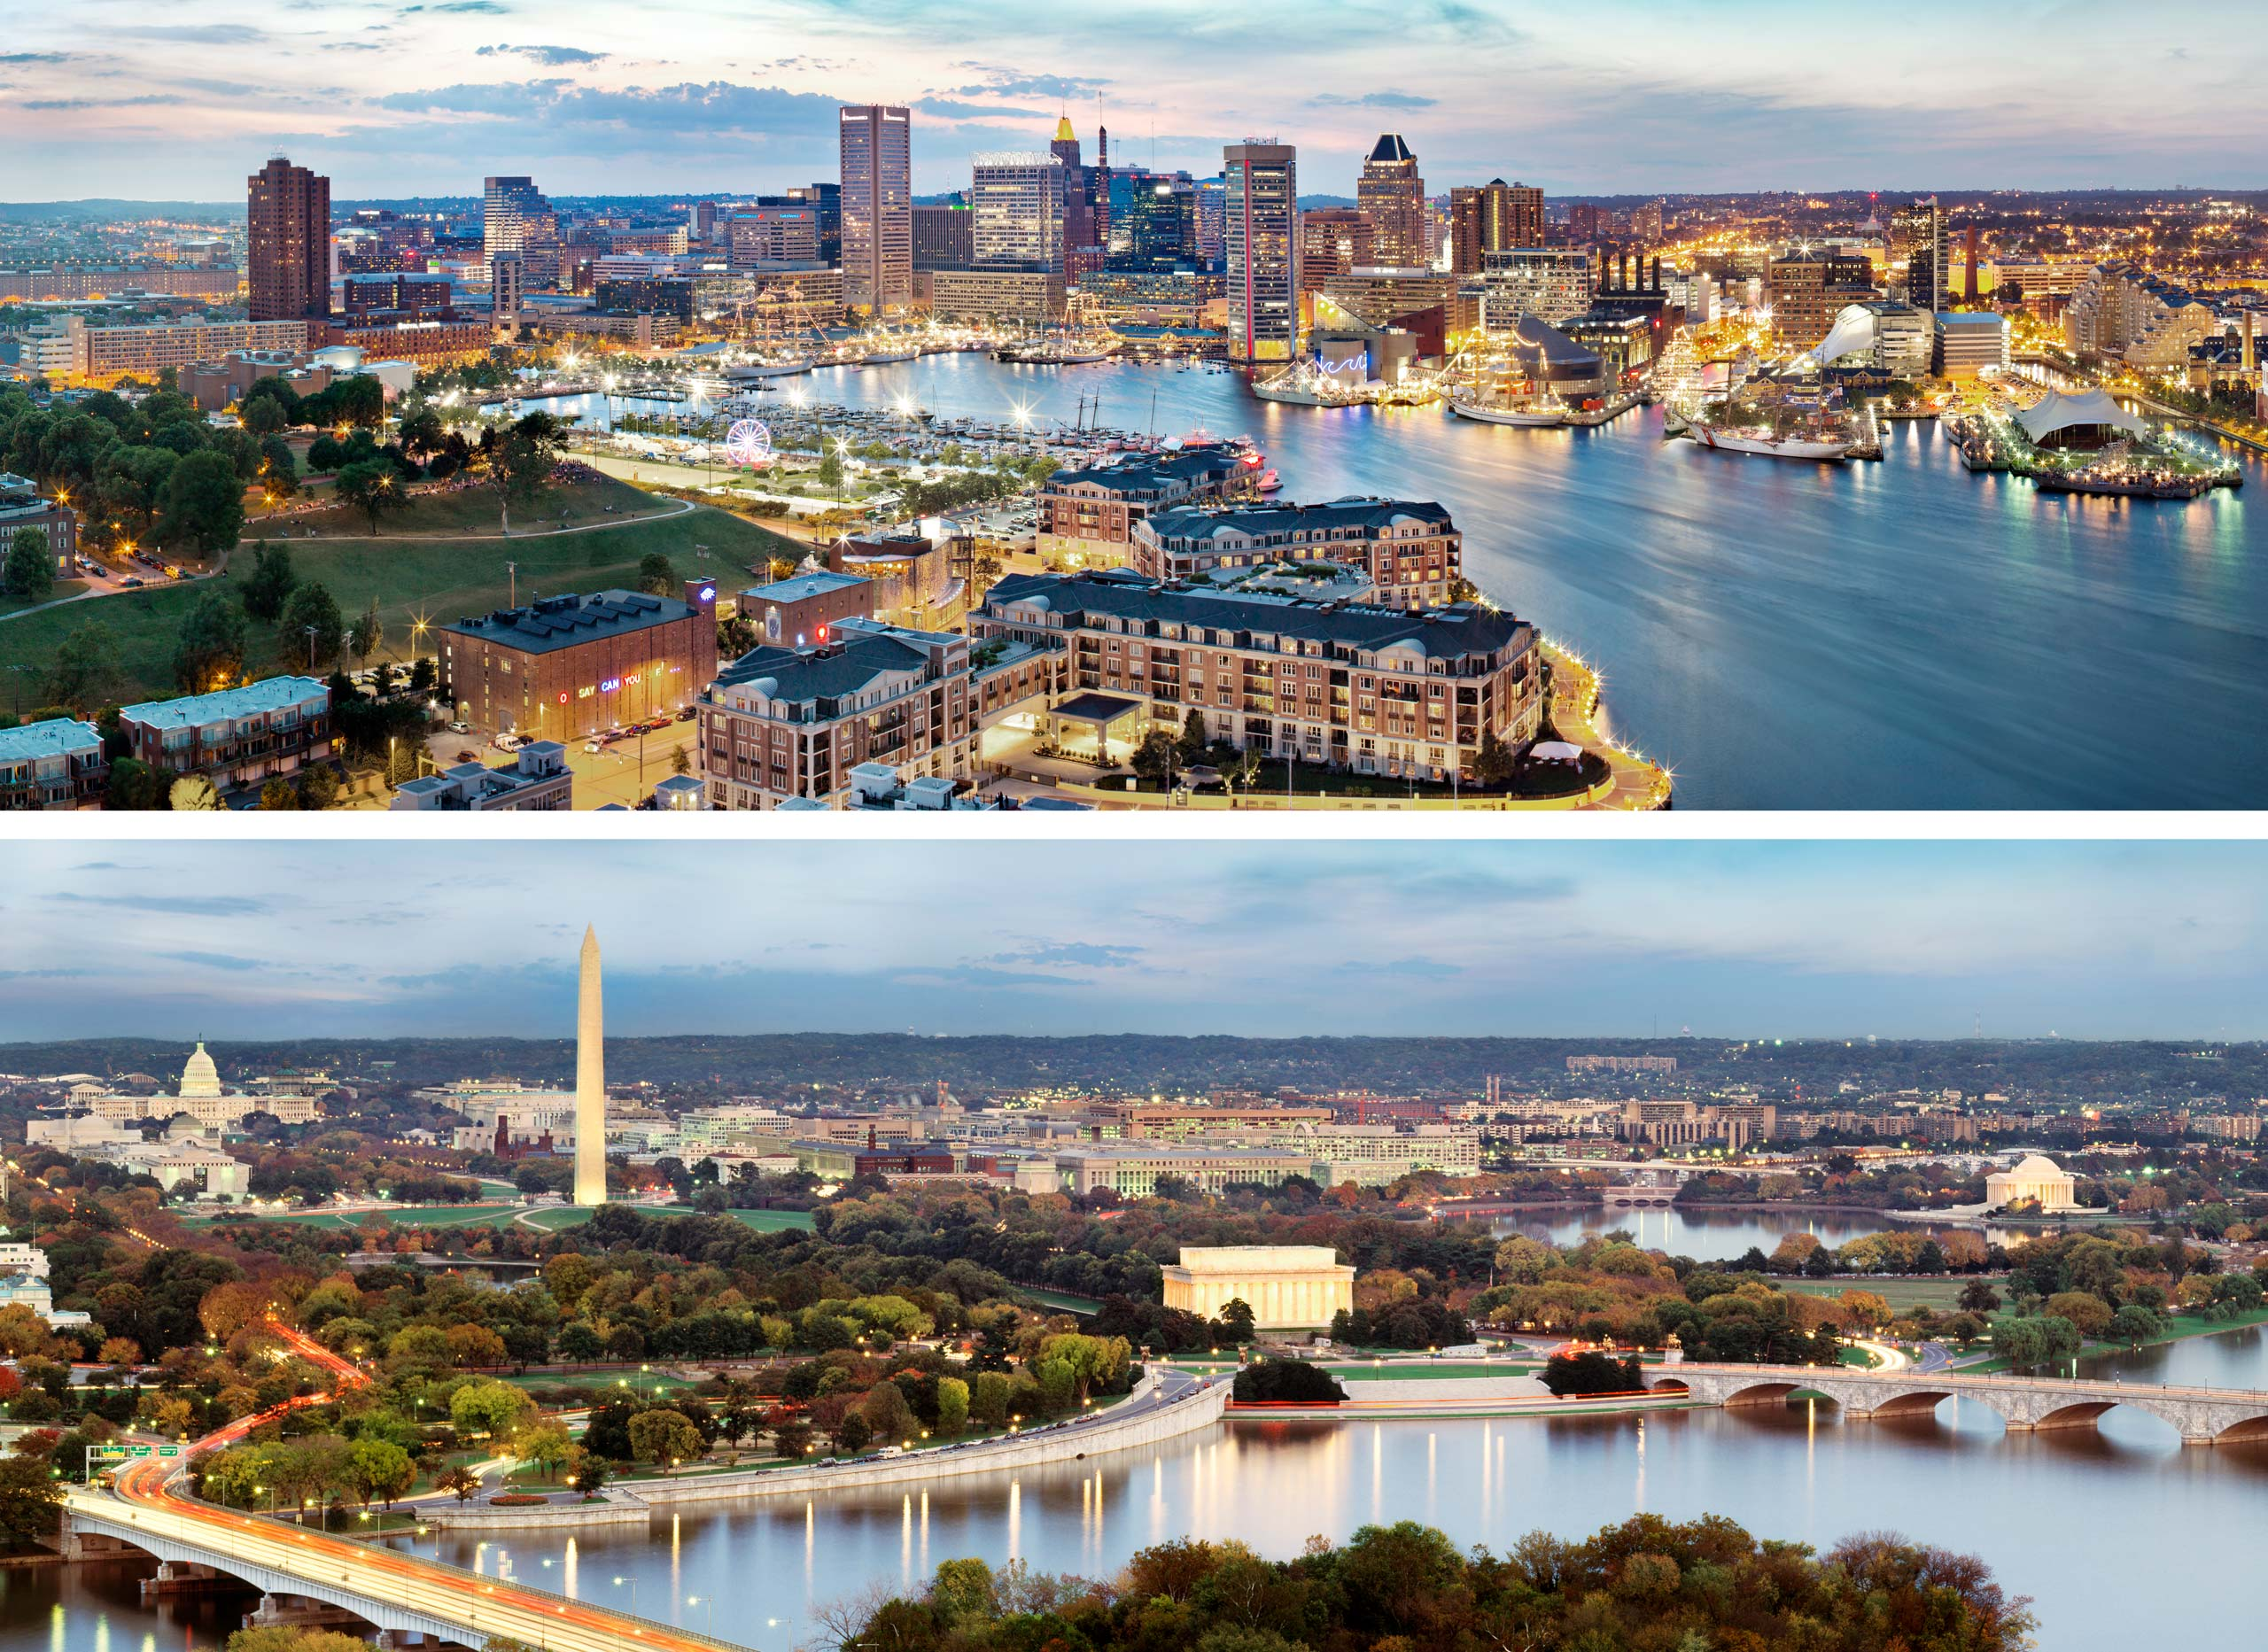 """PORTFOLIO - Baltimore - Skyline  #1 Campaign Theme: """"TWO GREAT CITIES, ONE GREAT AIRPORT"""""""